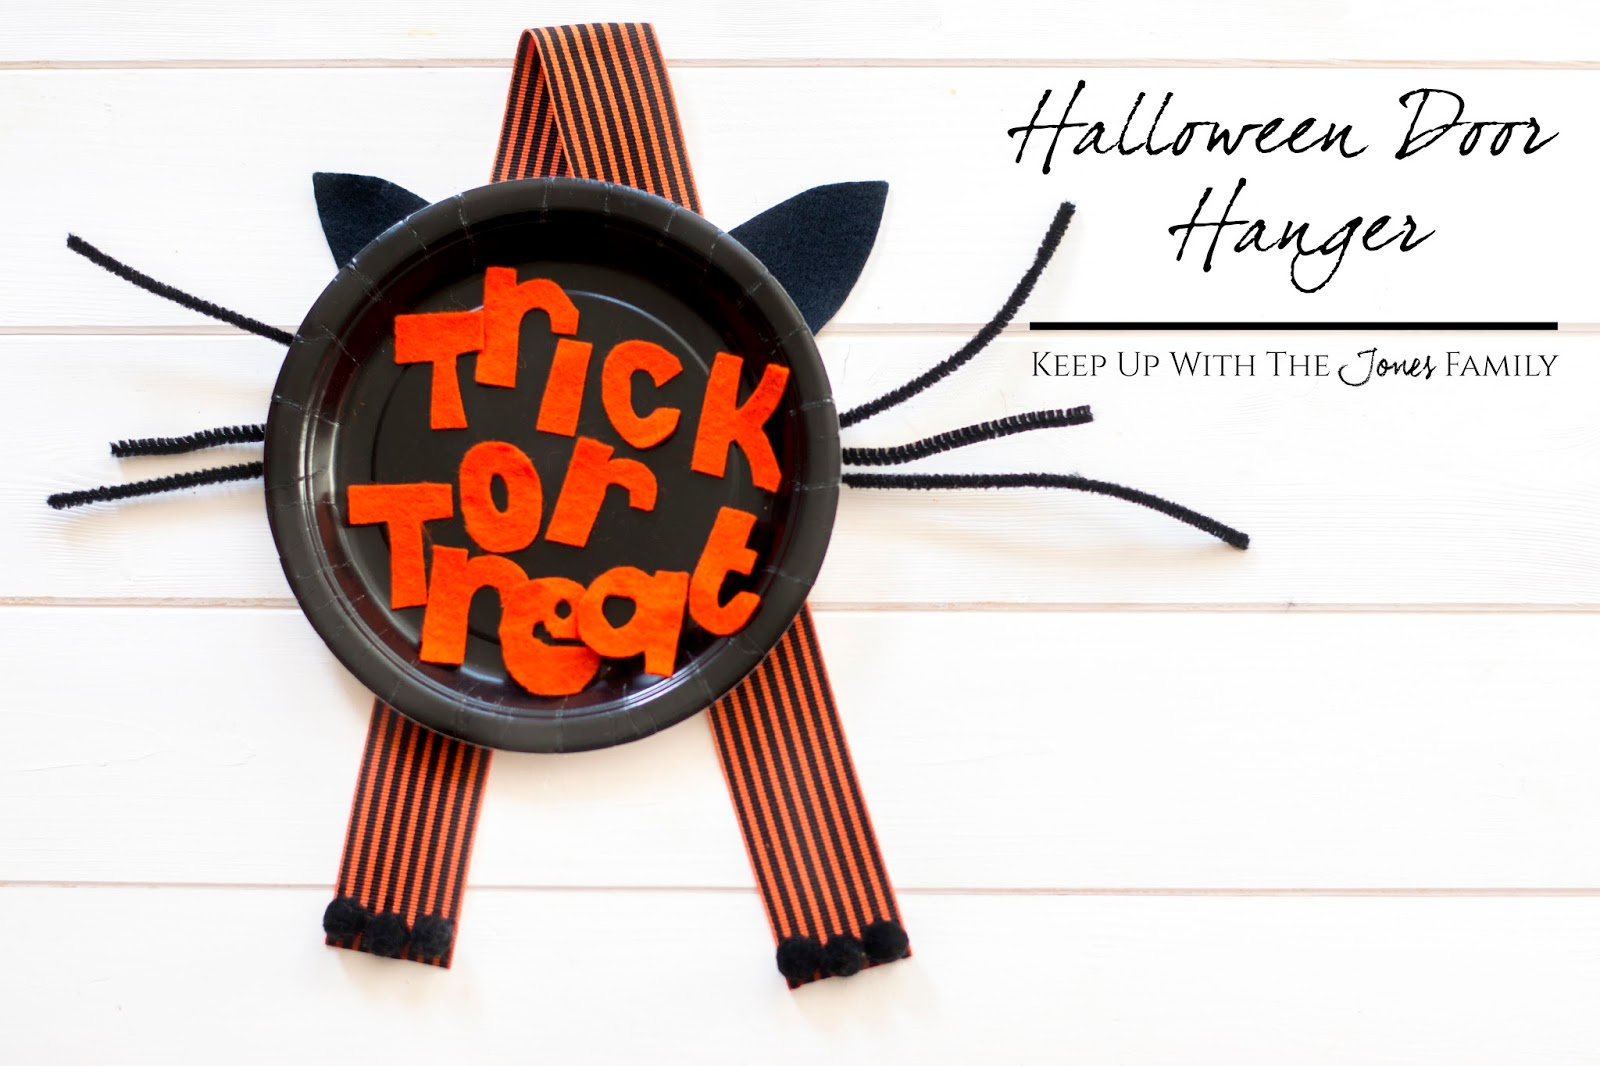 HALLOWE'EN DOOR HANGER CRAFT [BOSTIK BLOGGERS]